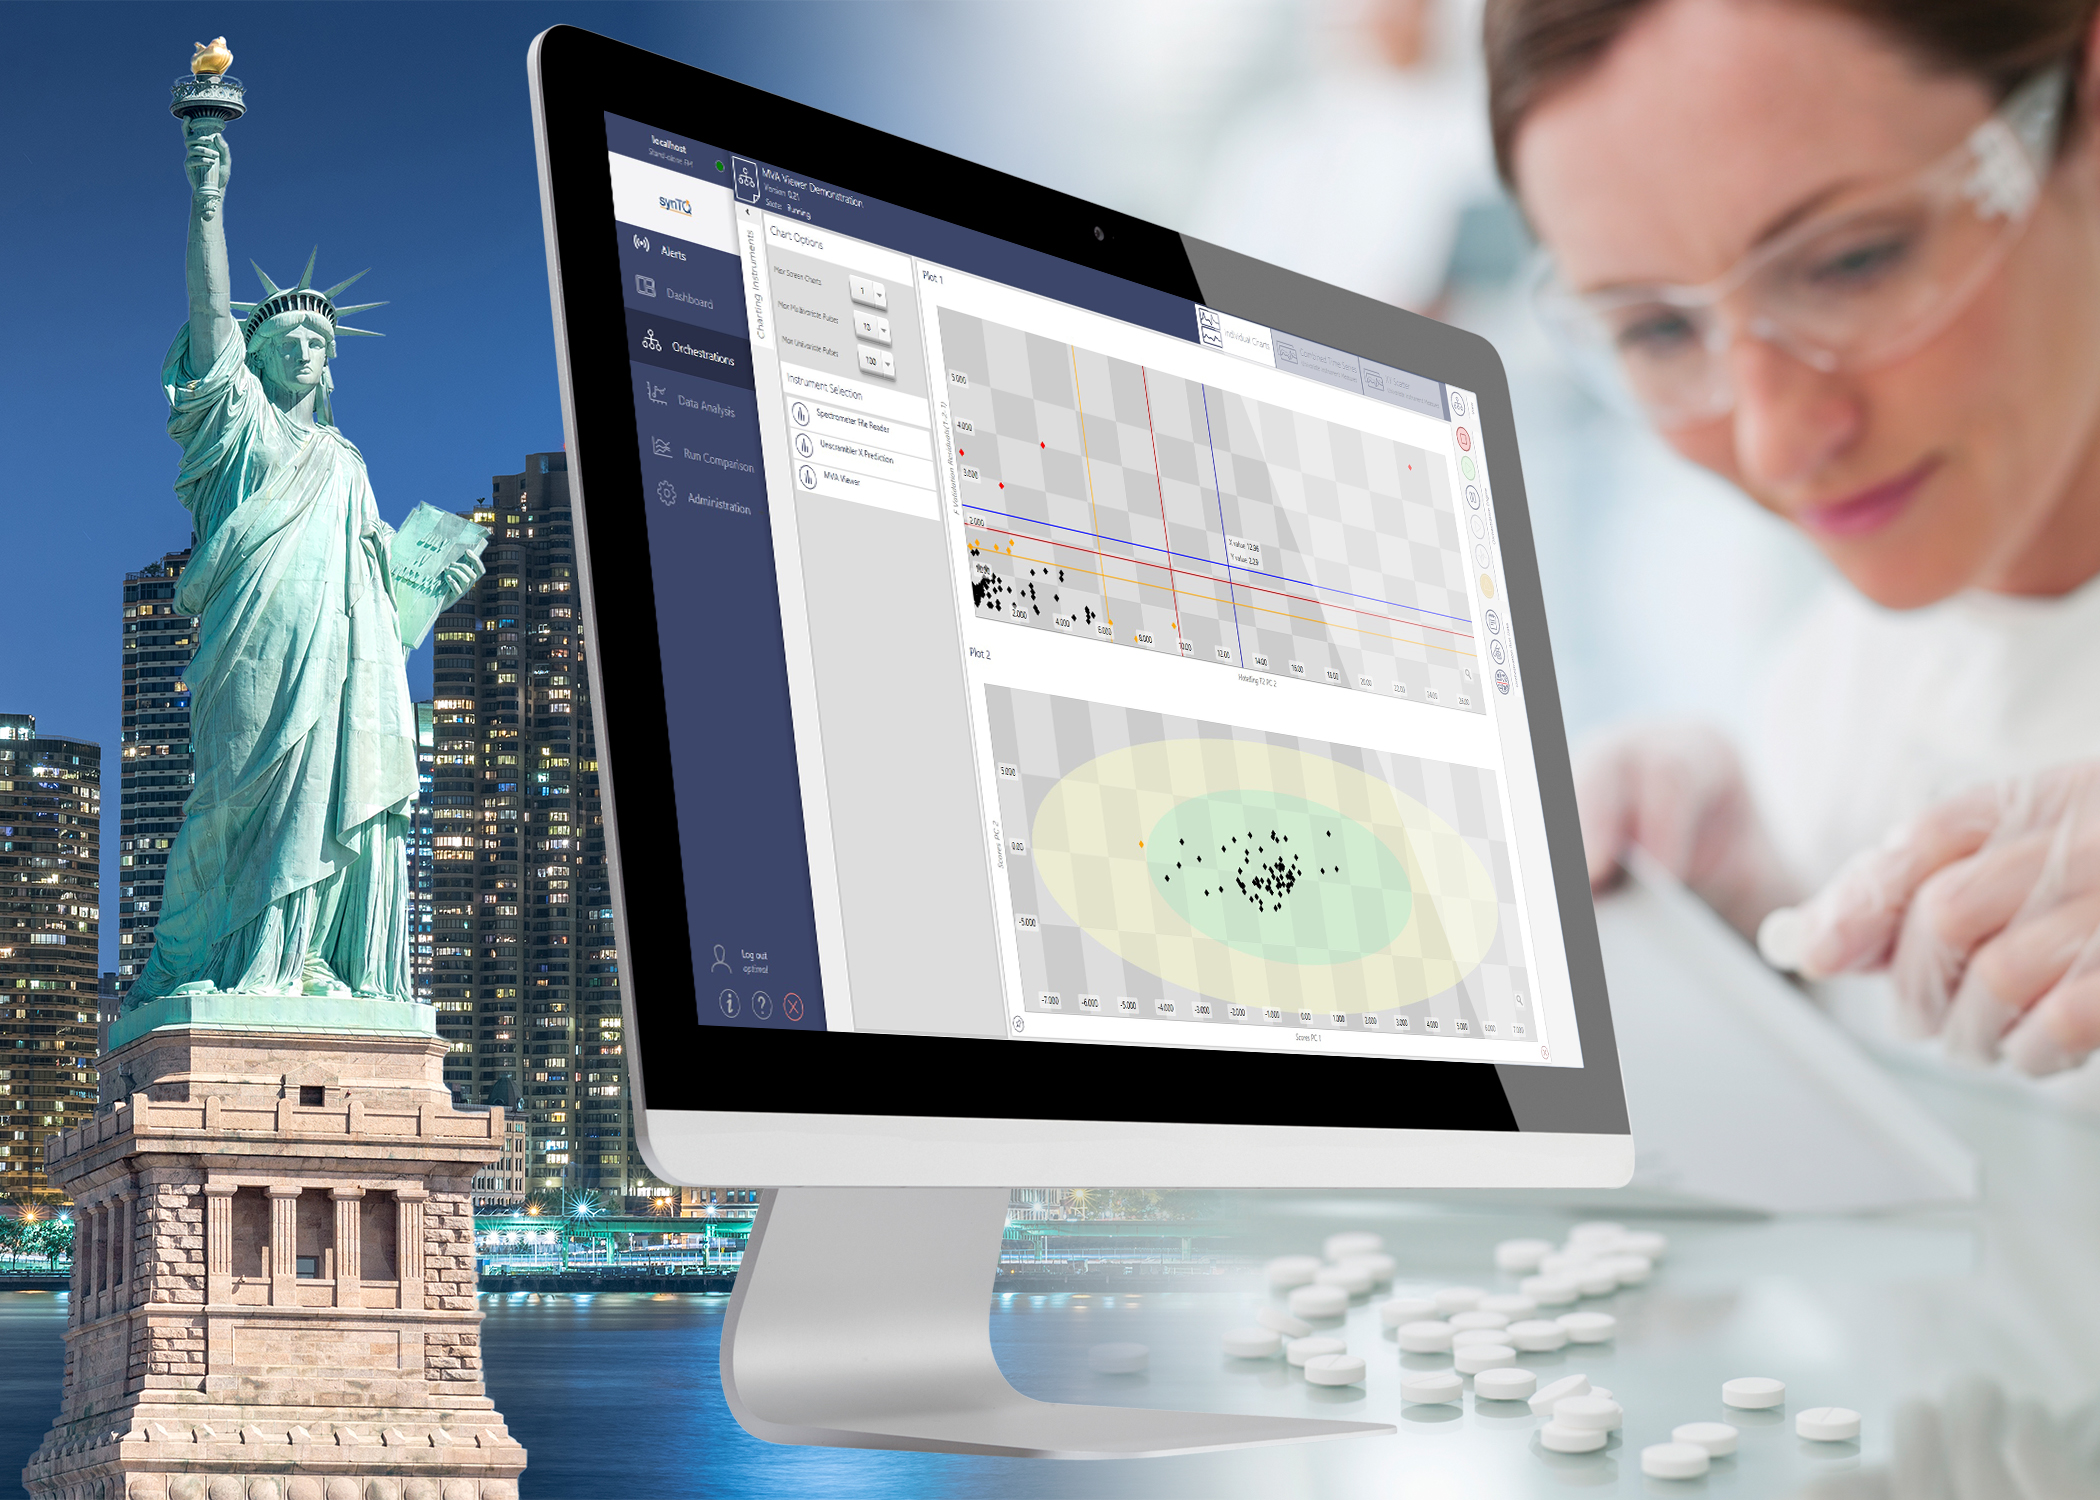 Optimal Industrial Technologies showcases developments in its Process Analytical Technology (PAT) knowledge management platform synTQ at Interphex 2018